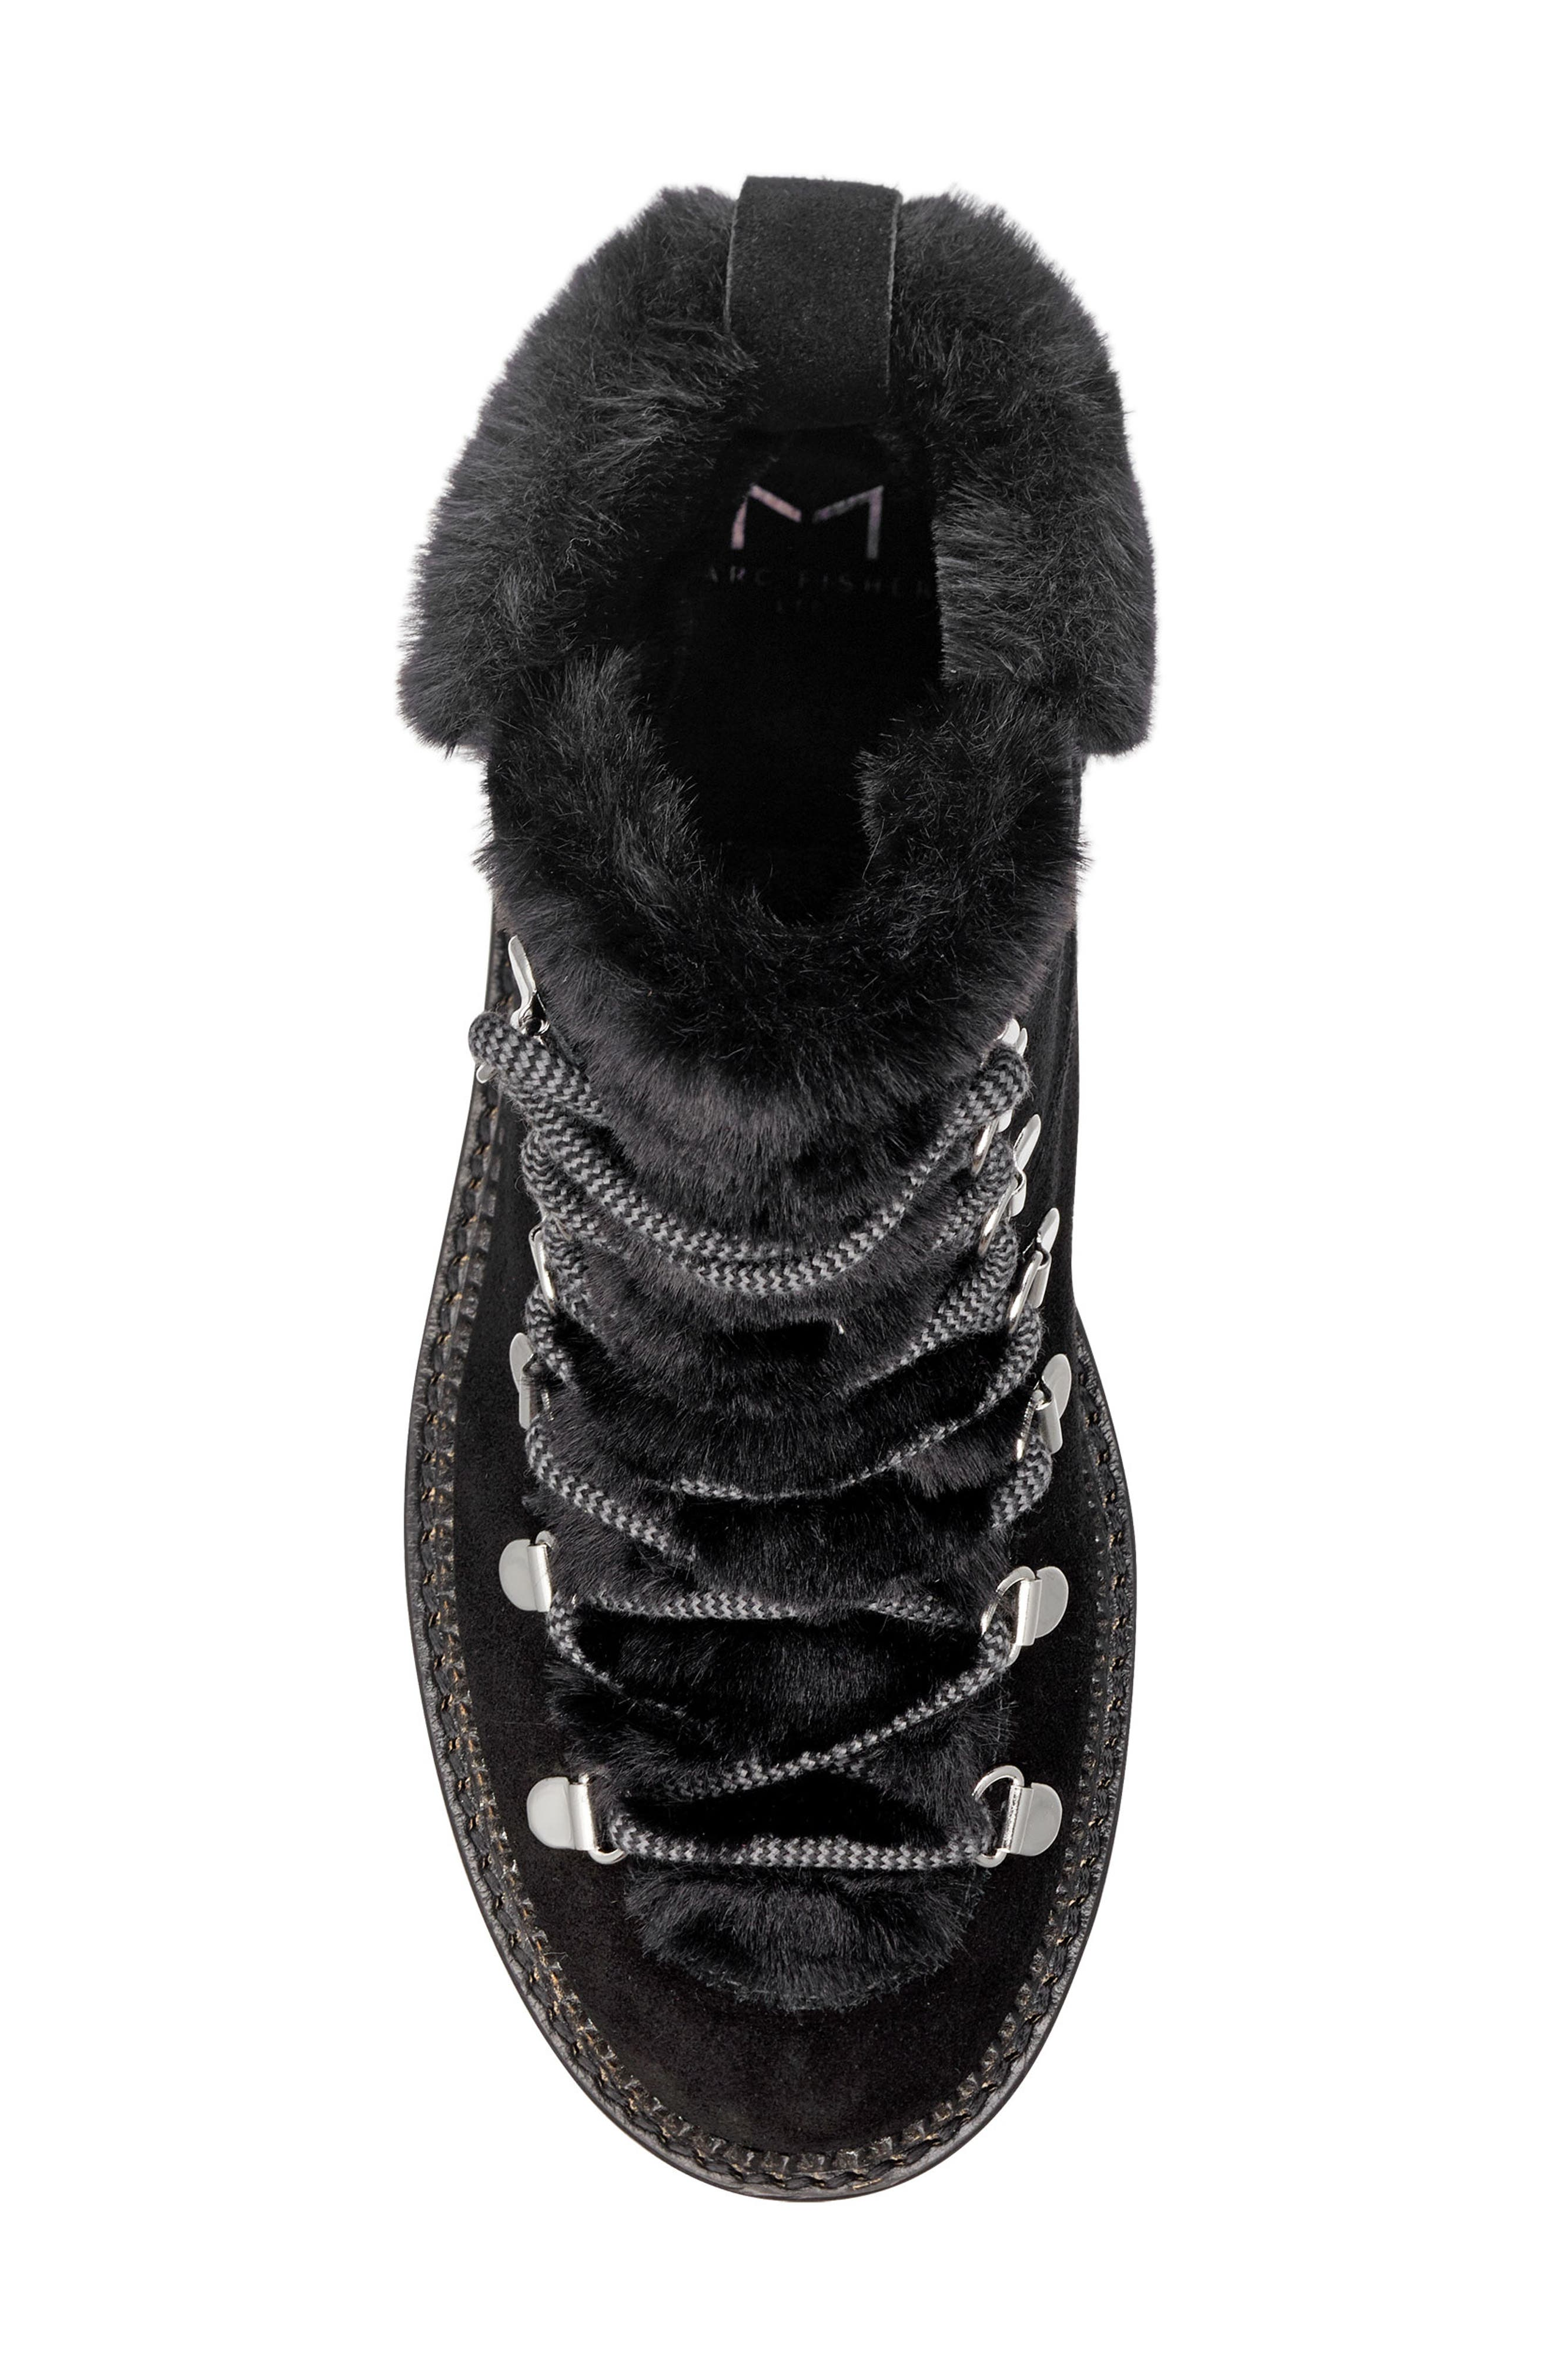 Capell Faux Shearling Cuff Lace-Up Boot,                             Alternate thumbnail 5, color,                             BLACK SUEDE